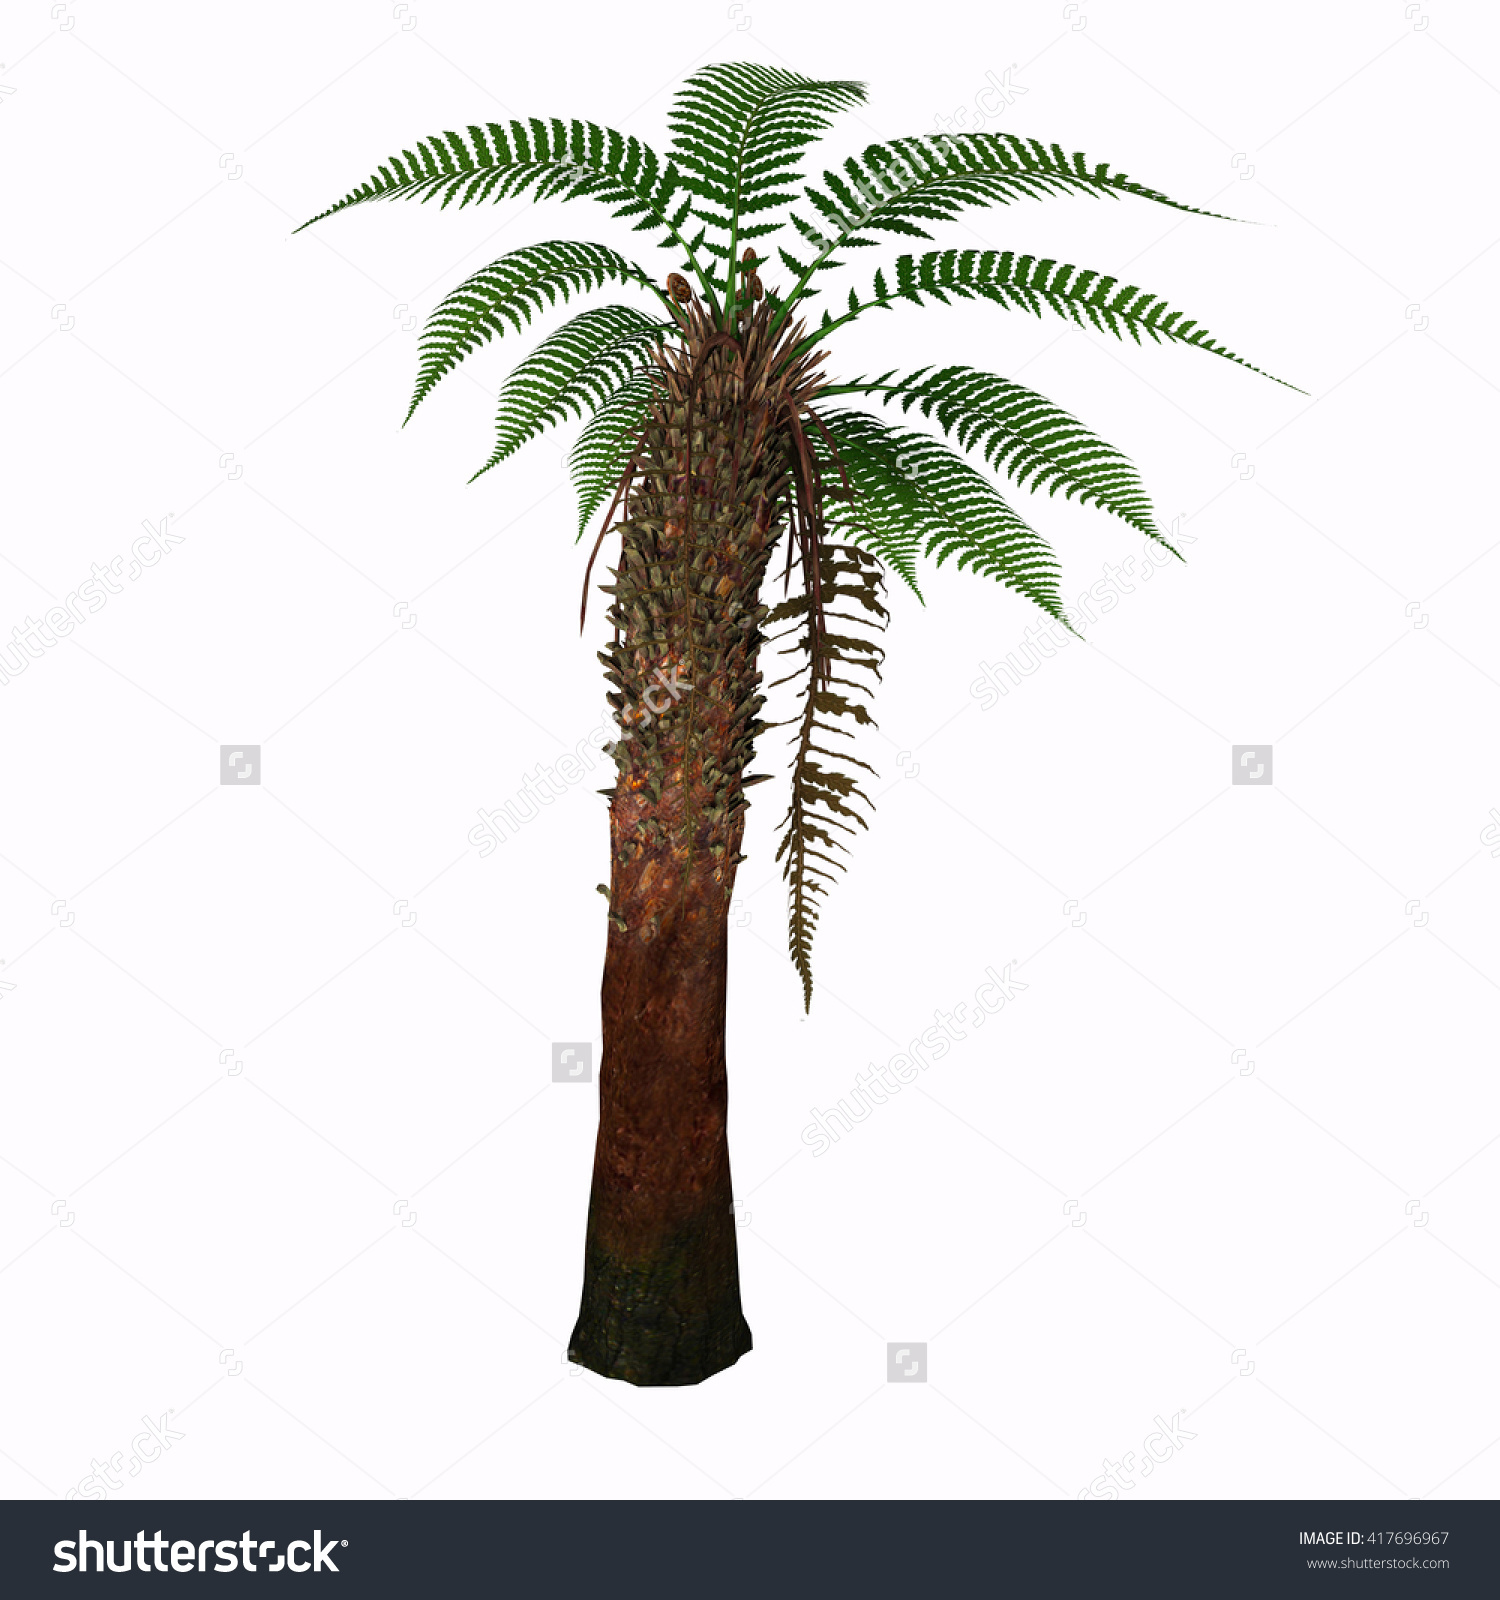 Dicksonia Tree 3d Illustration Dicksonia Antarctica Stock.